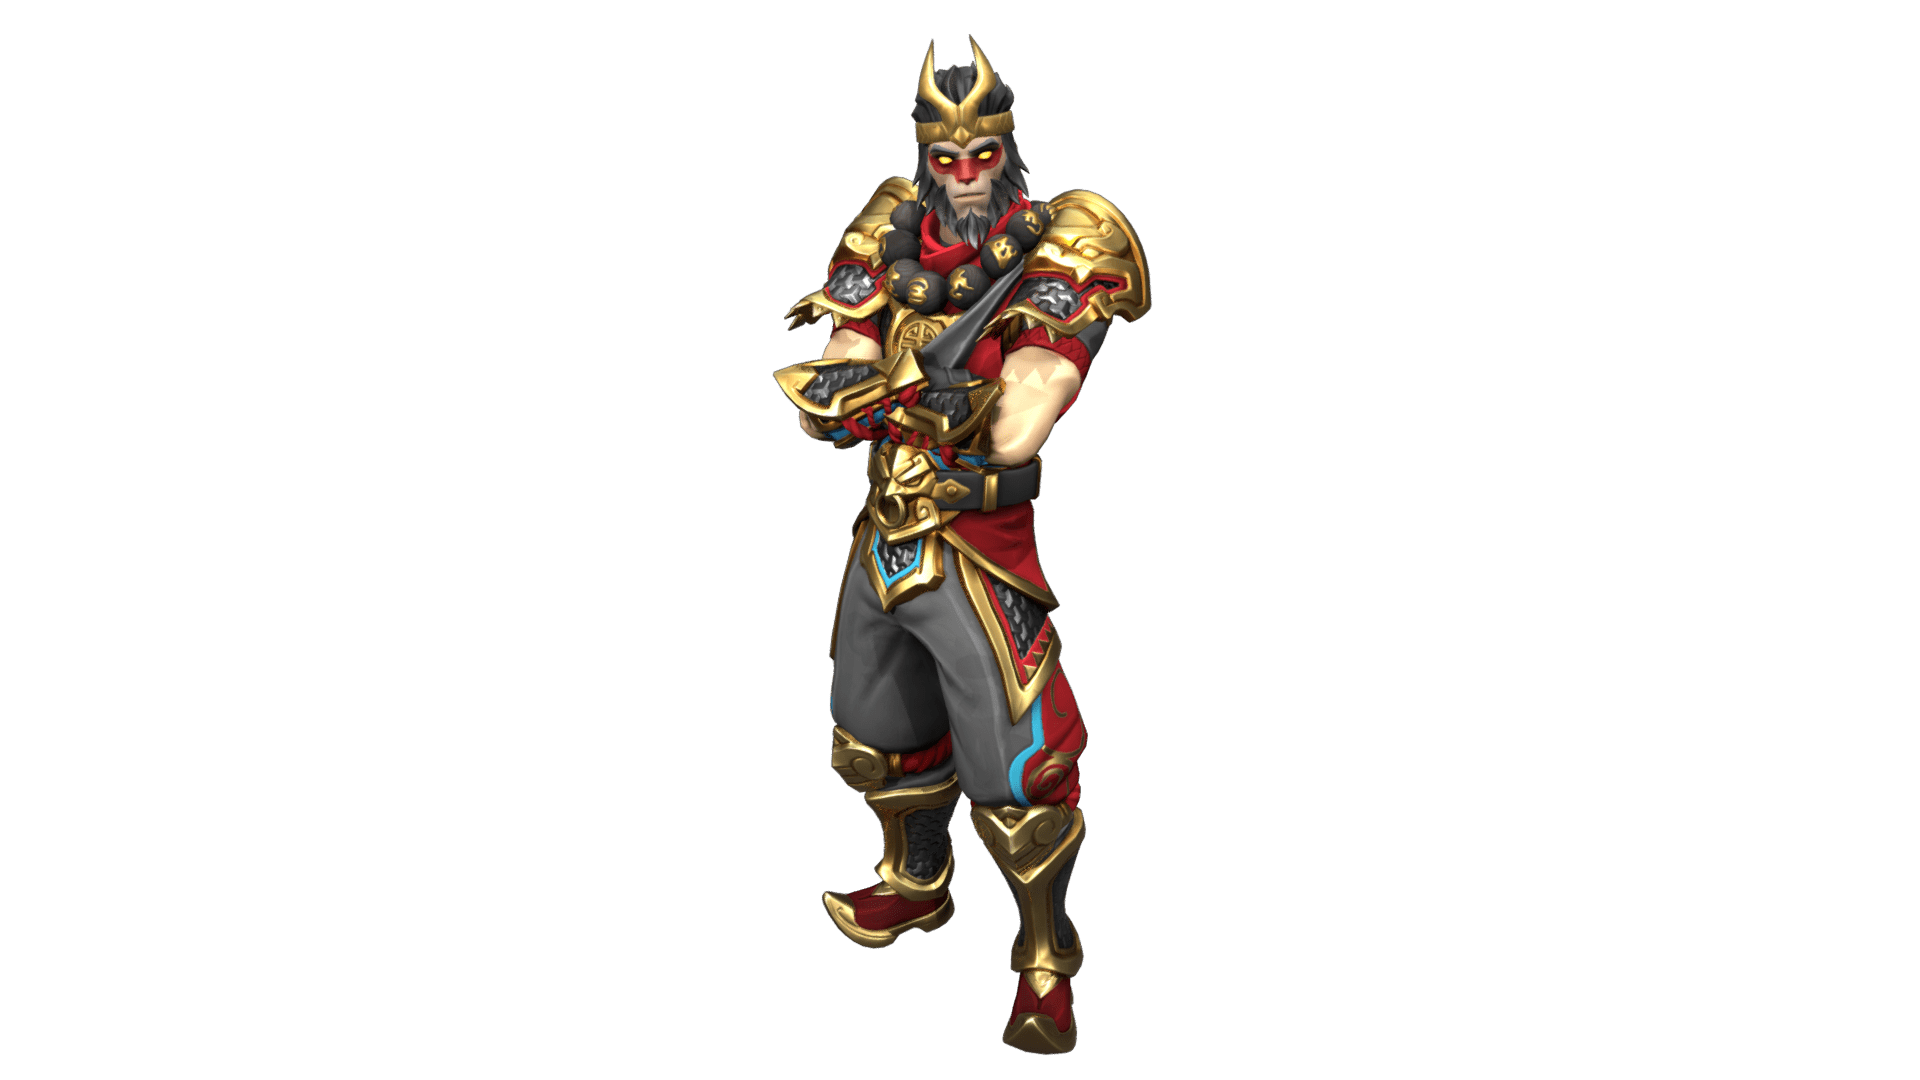 Fortnite Wukong Skin Legendary Outfit Fortnite Skins - png images